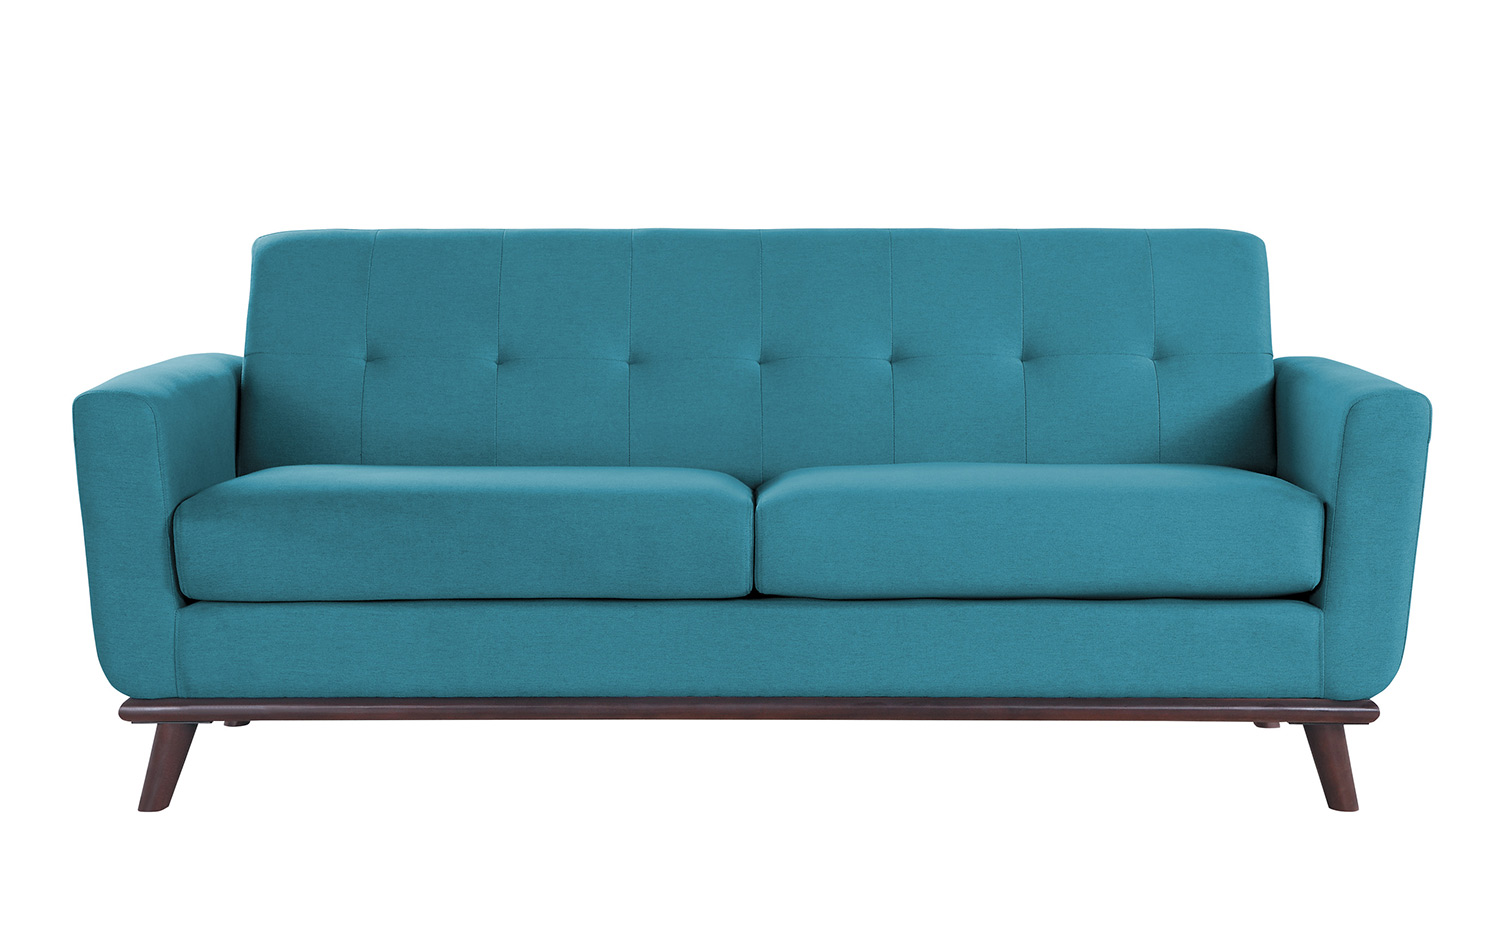 Homelegance Rittman Sofa - Blue